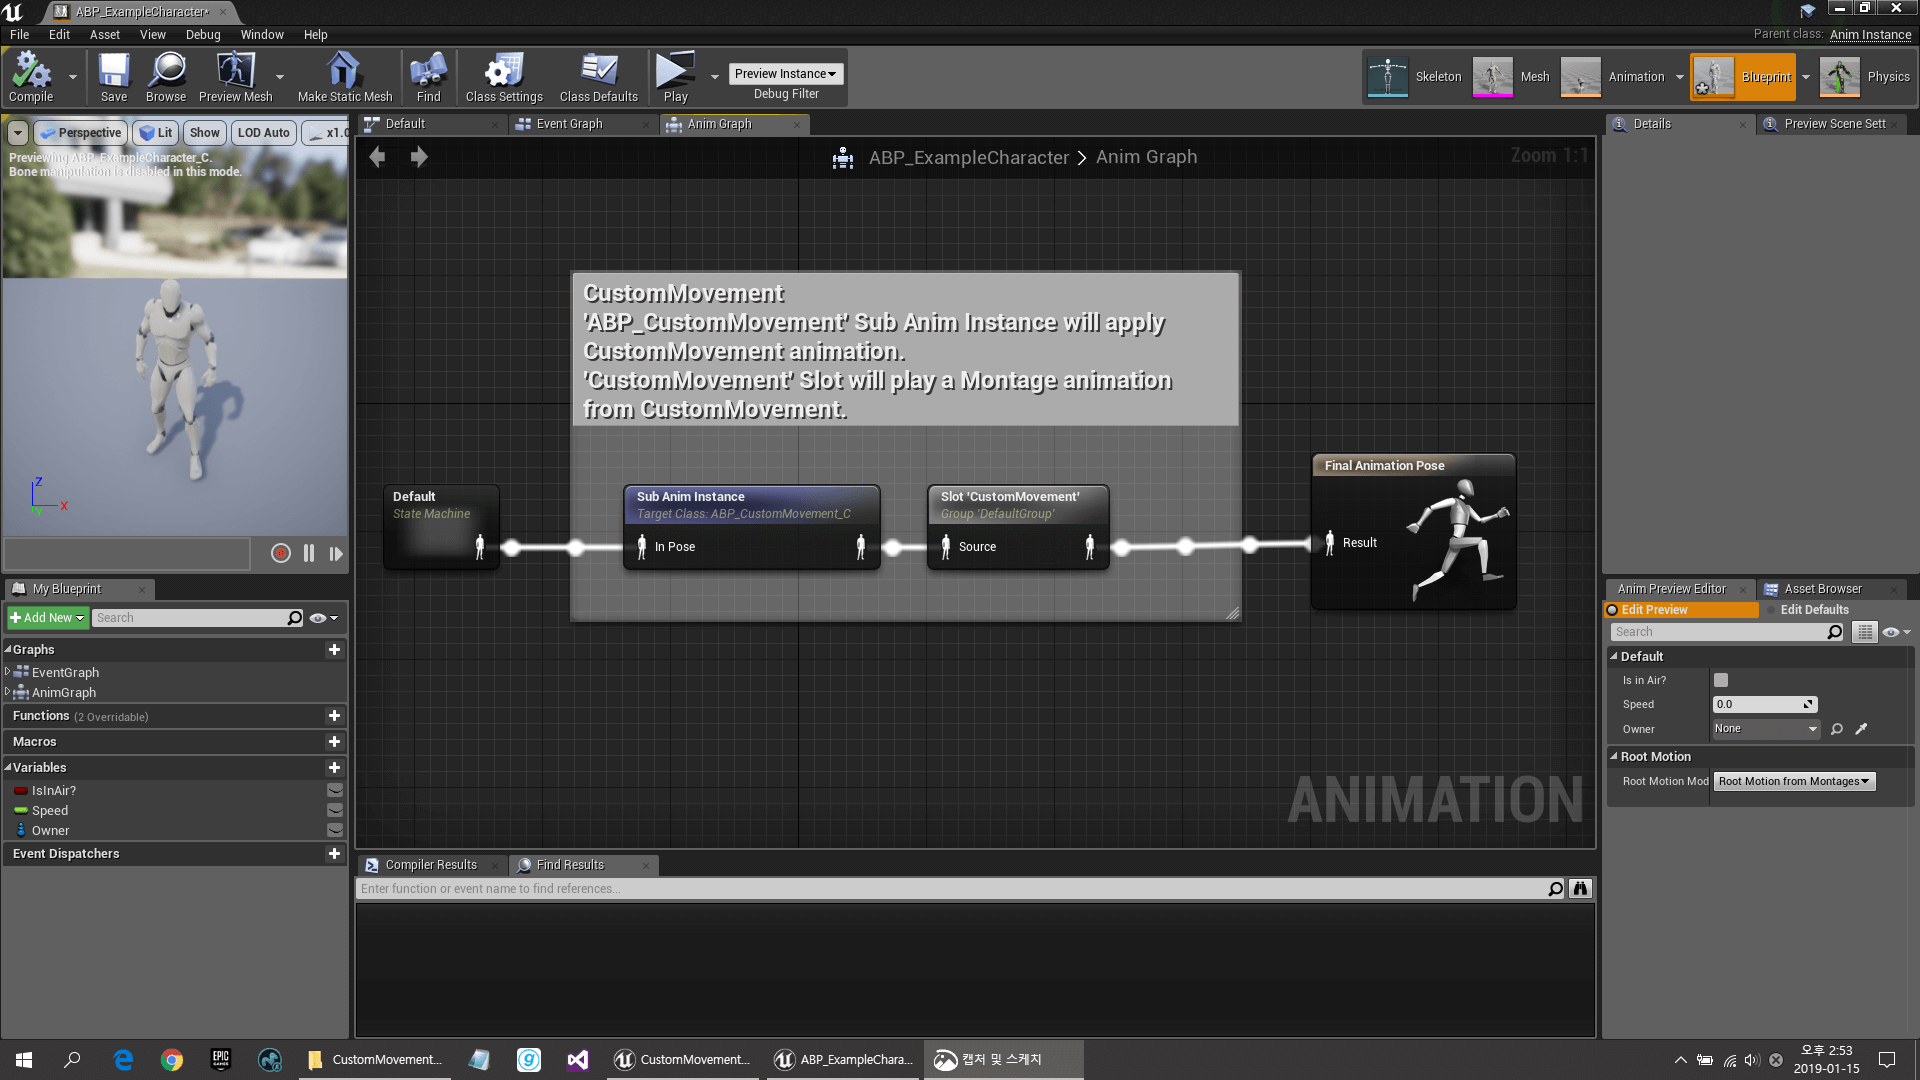 Custom Movement by Ju-Sik Lee in Blueprints - UE4 Marketplace